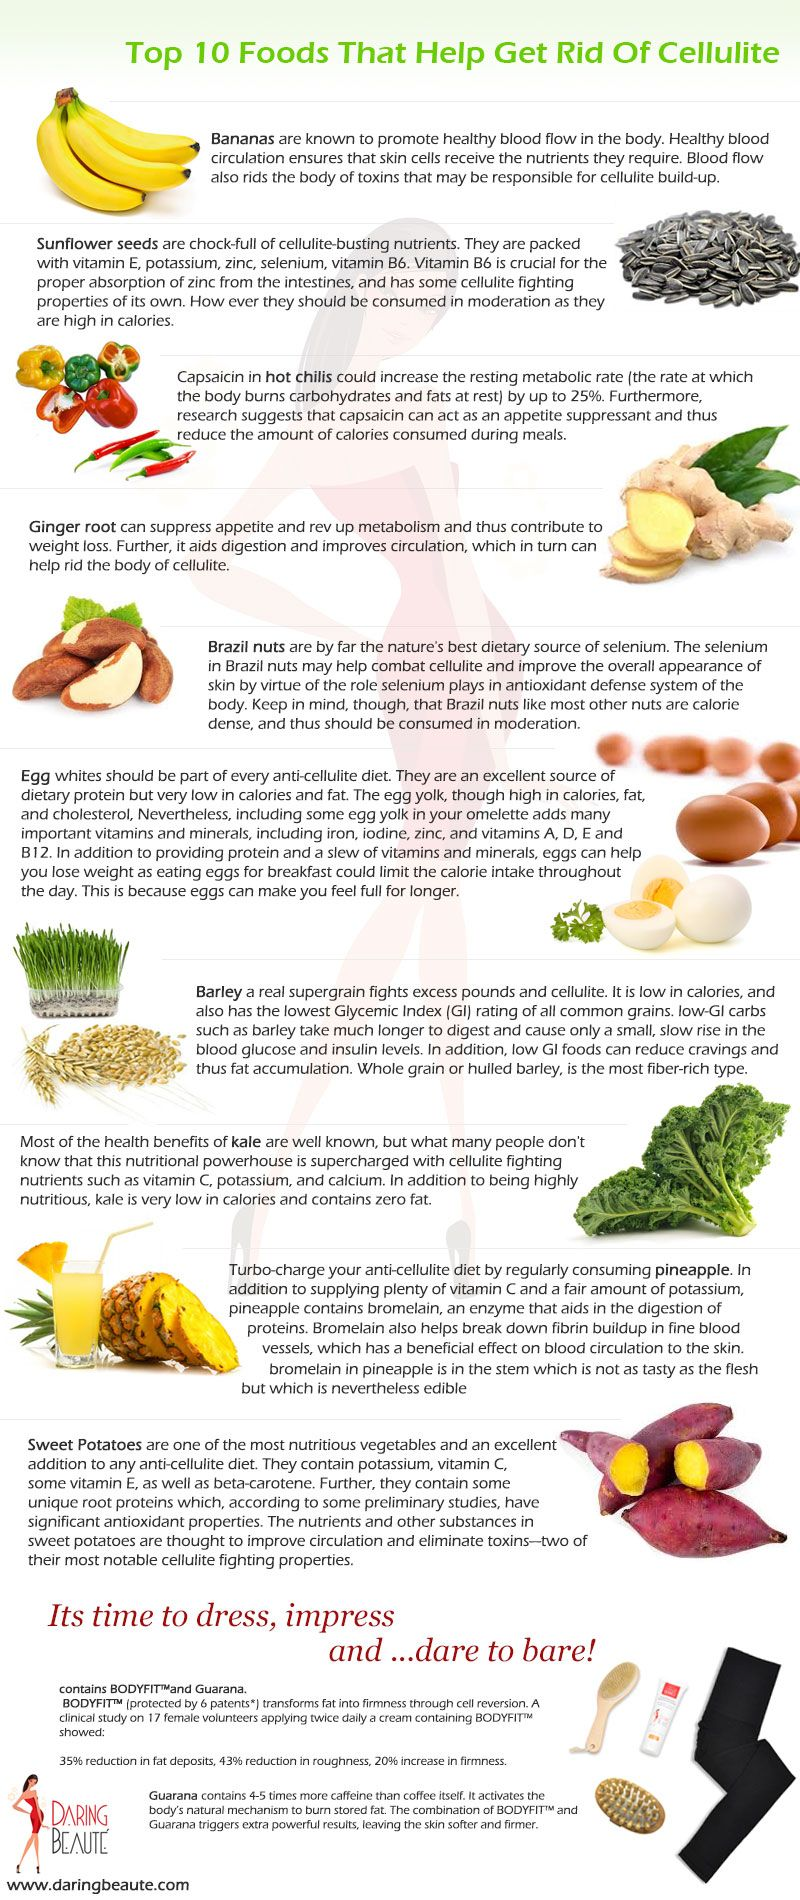 Most cellulite causing foods